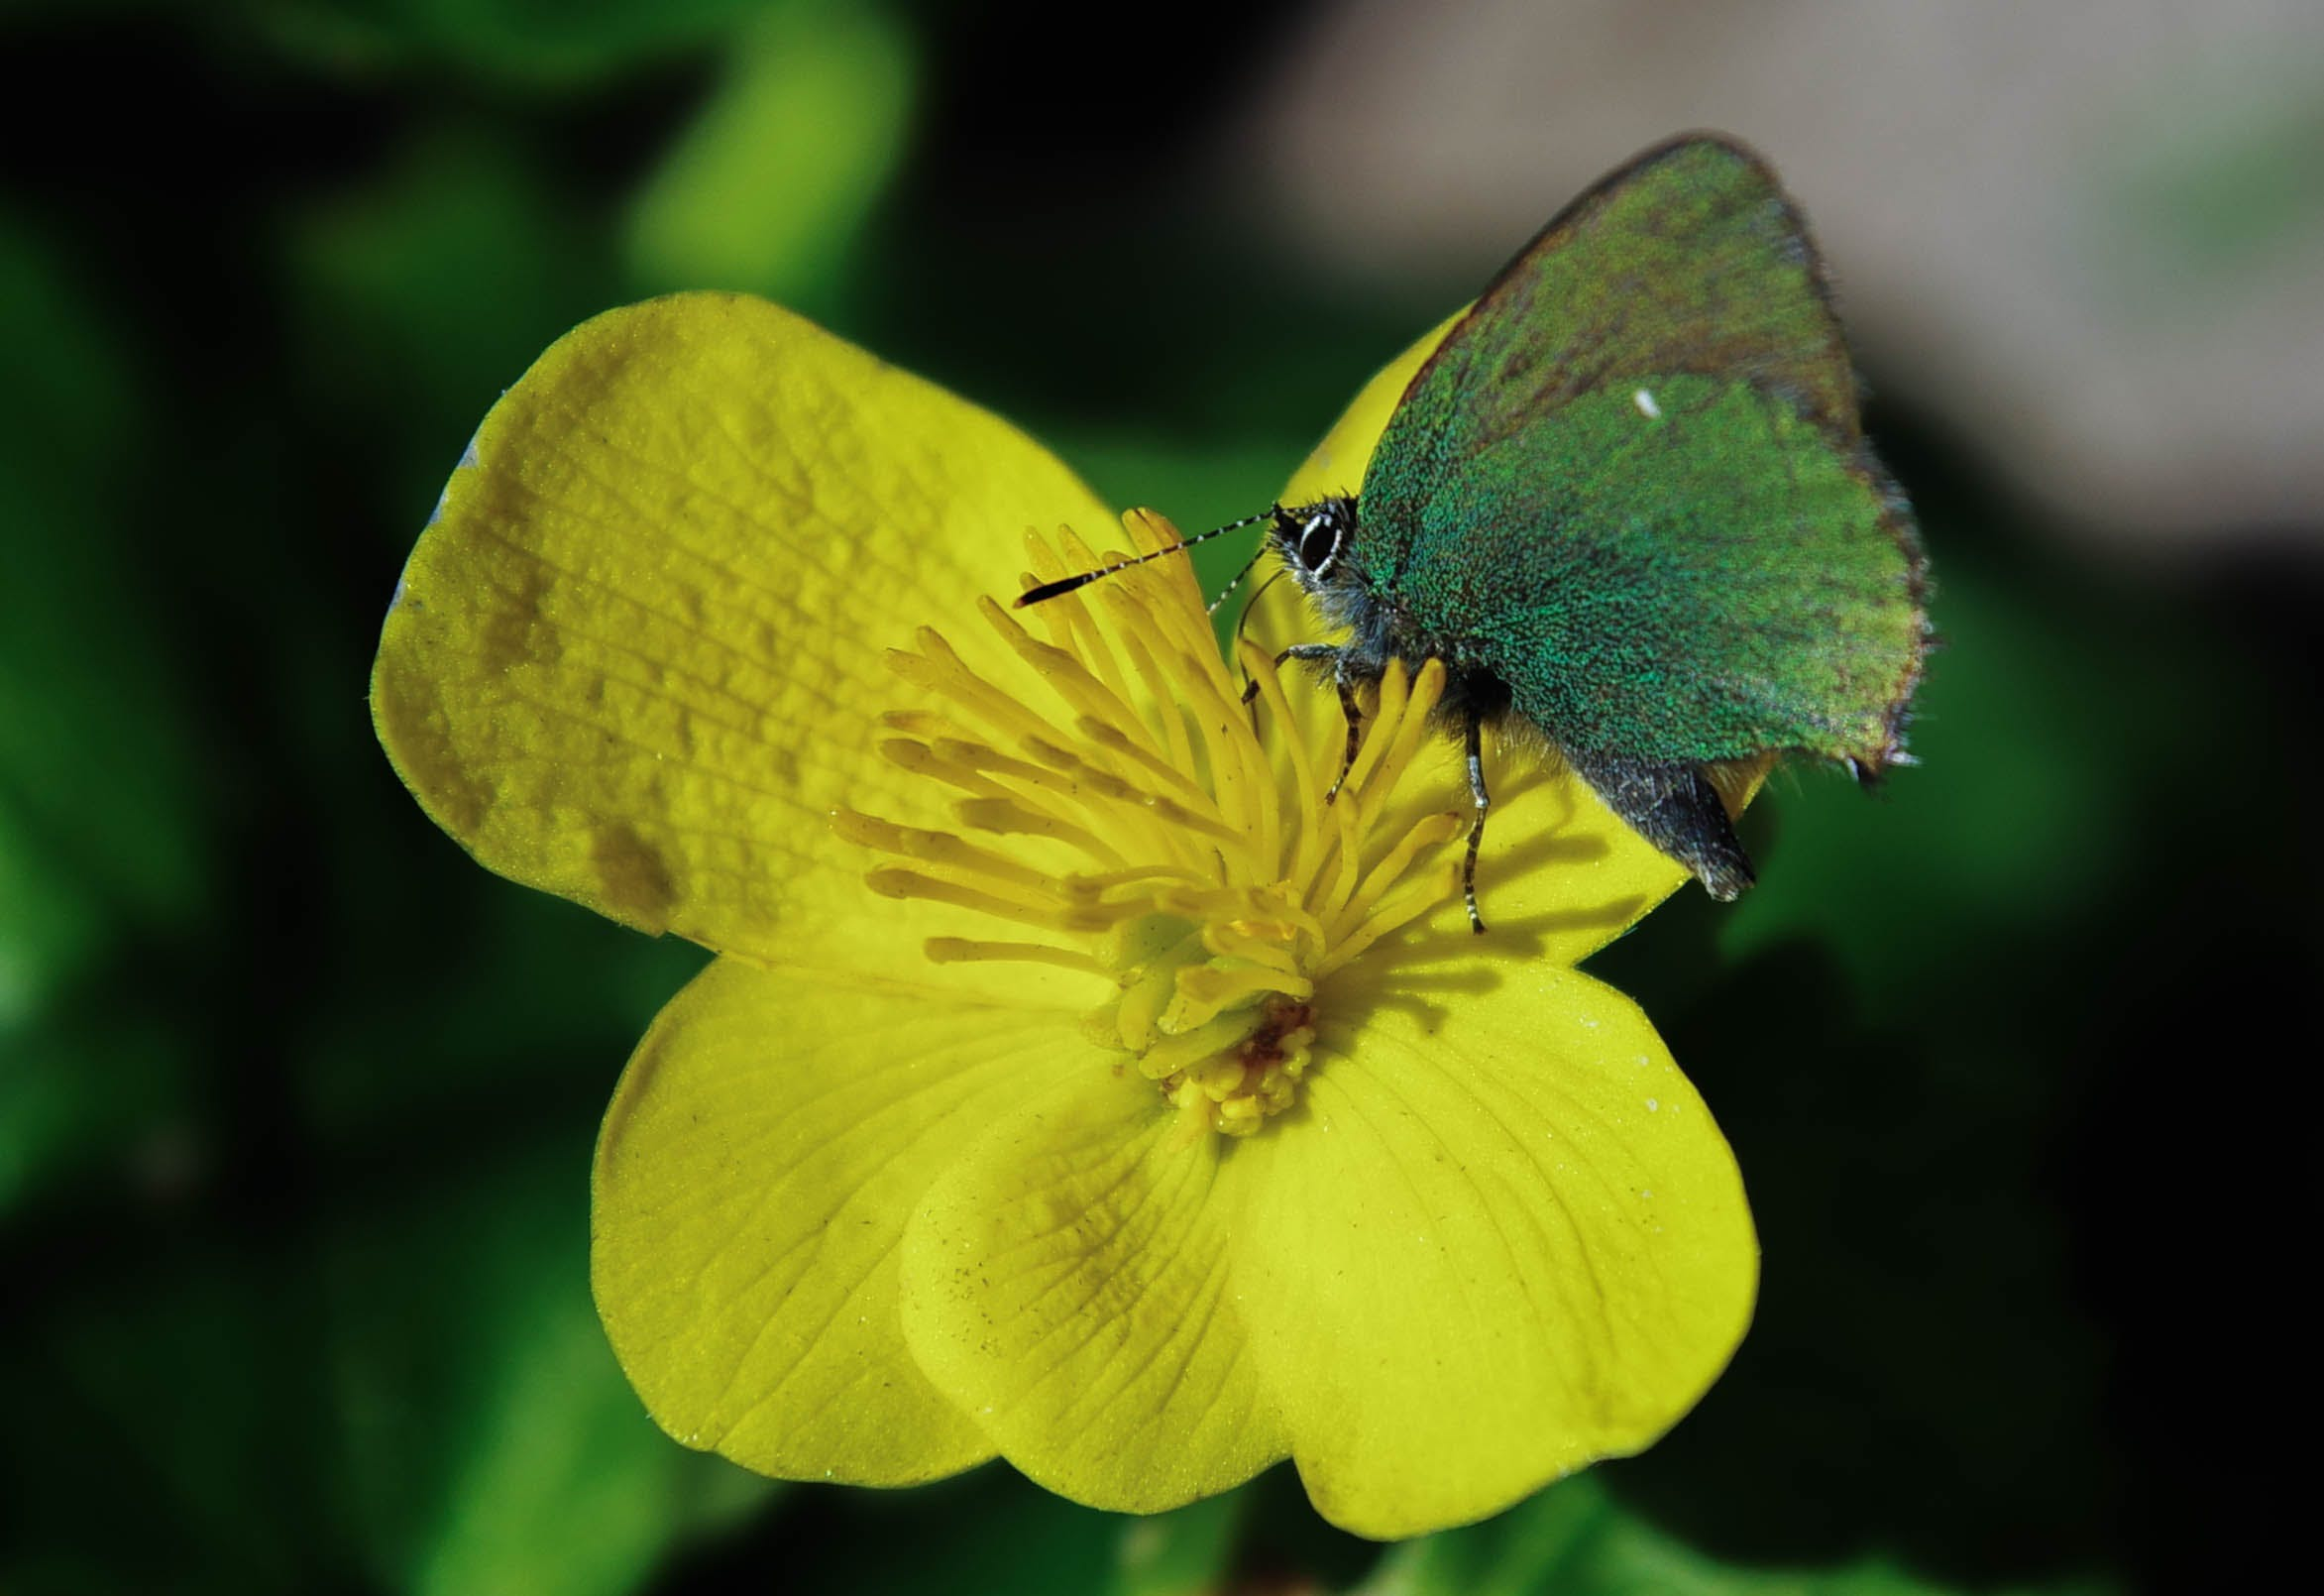 Green Butterfly on Rapeseed Flower